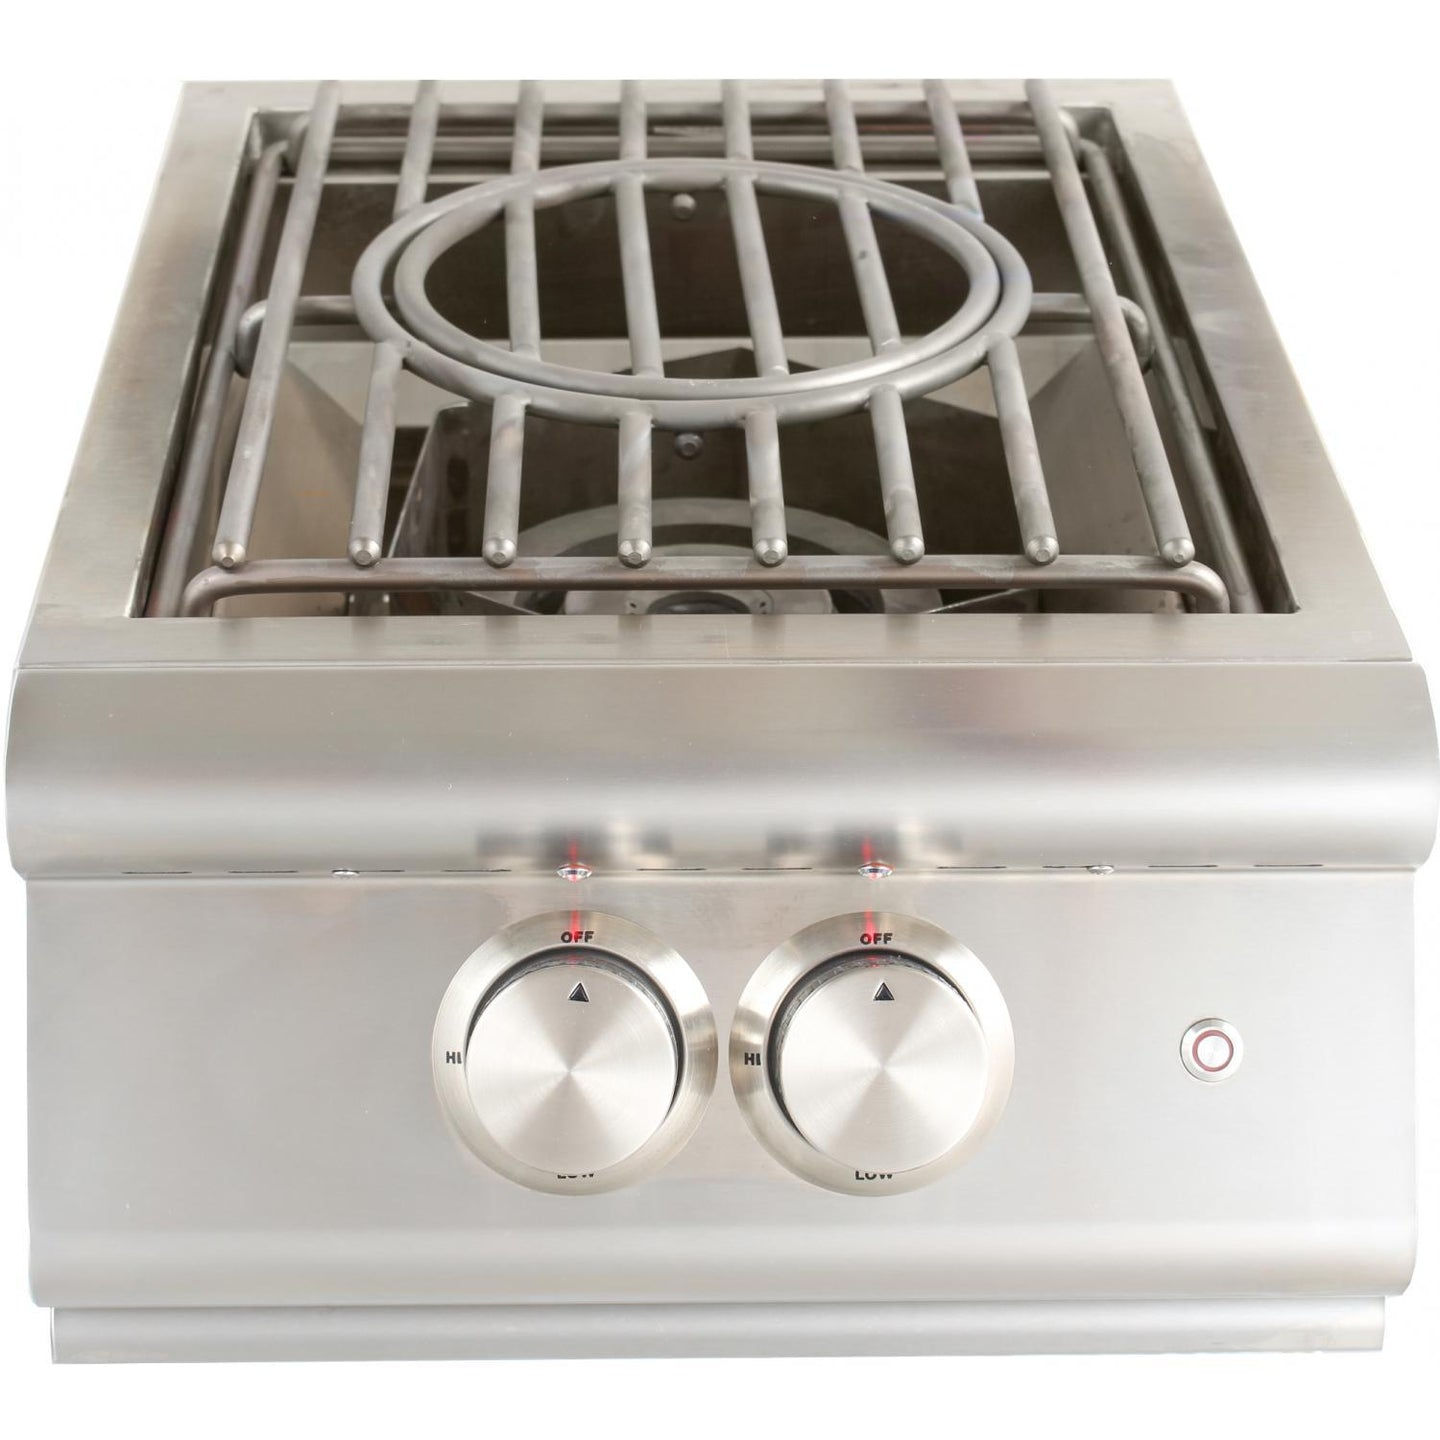 Blaze Built-In High Performance Power Burner W/ Wok Ring & Stainless Steel Lid and Lights - BLZ-PBLTE-LP/NG